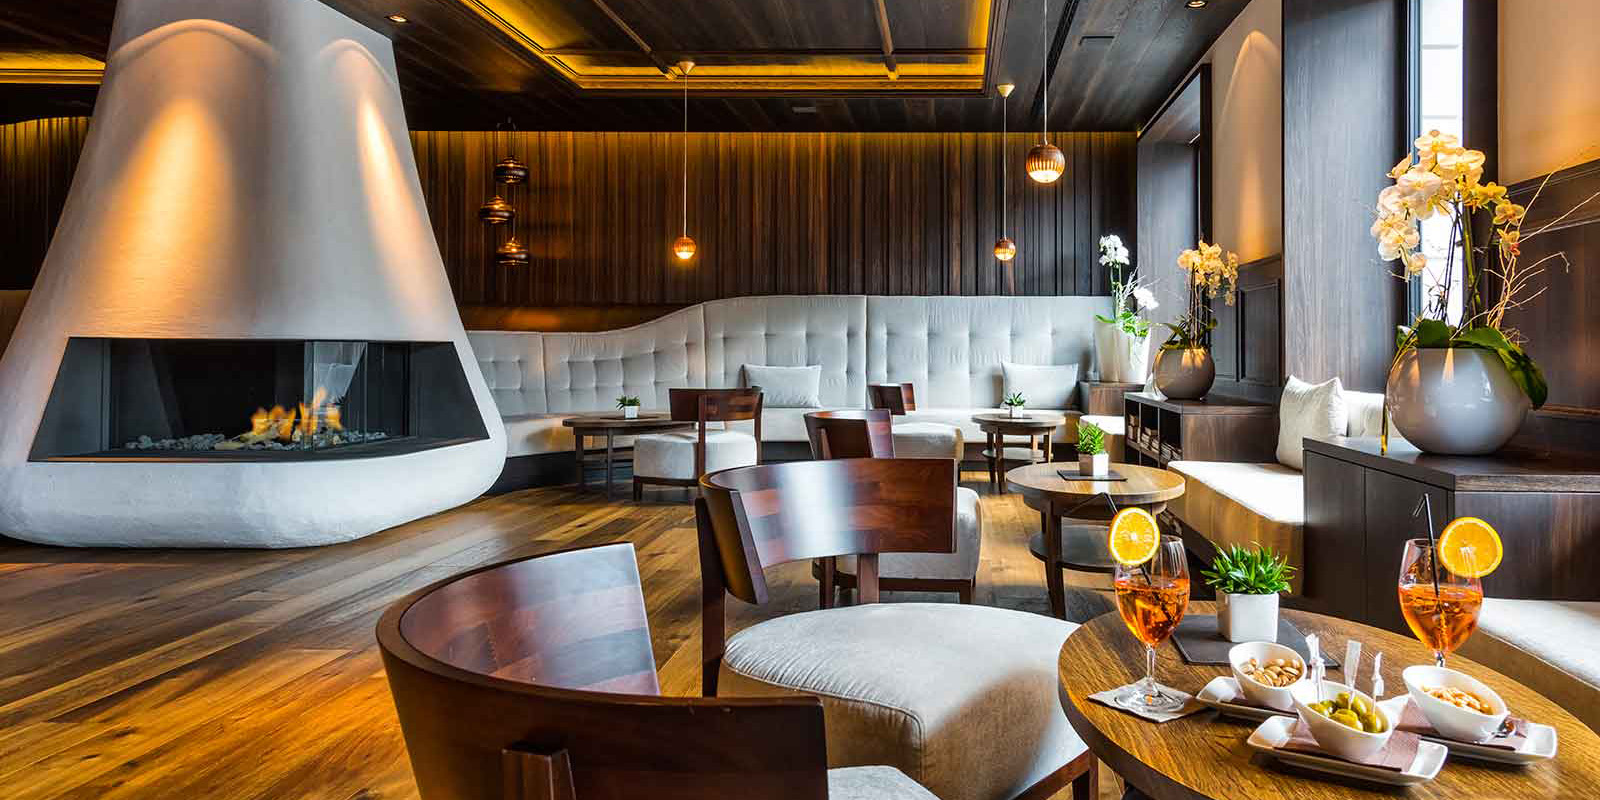 Hotel genziana hotels chalet partners orizzonte for Design hotel ortisei